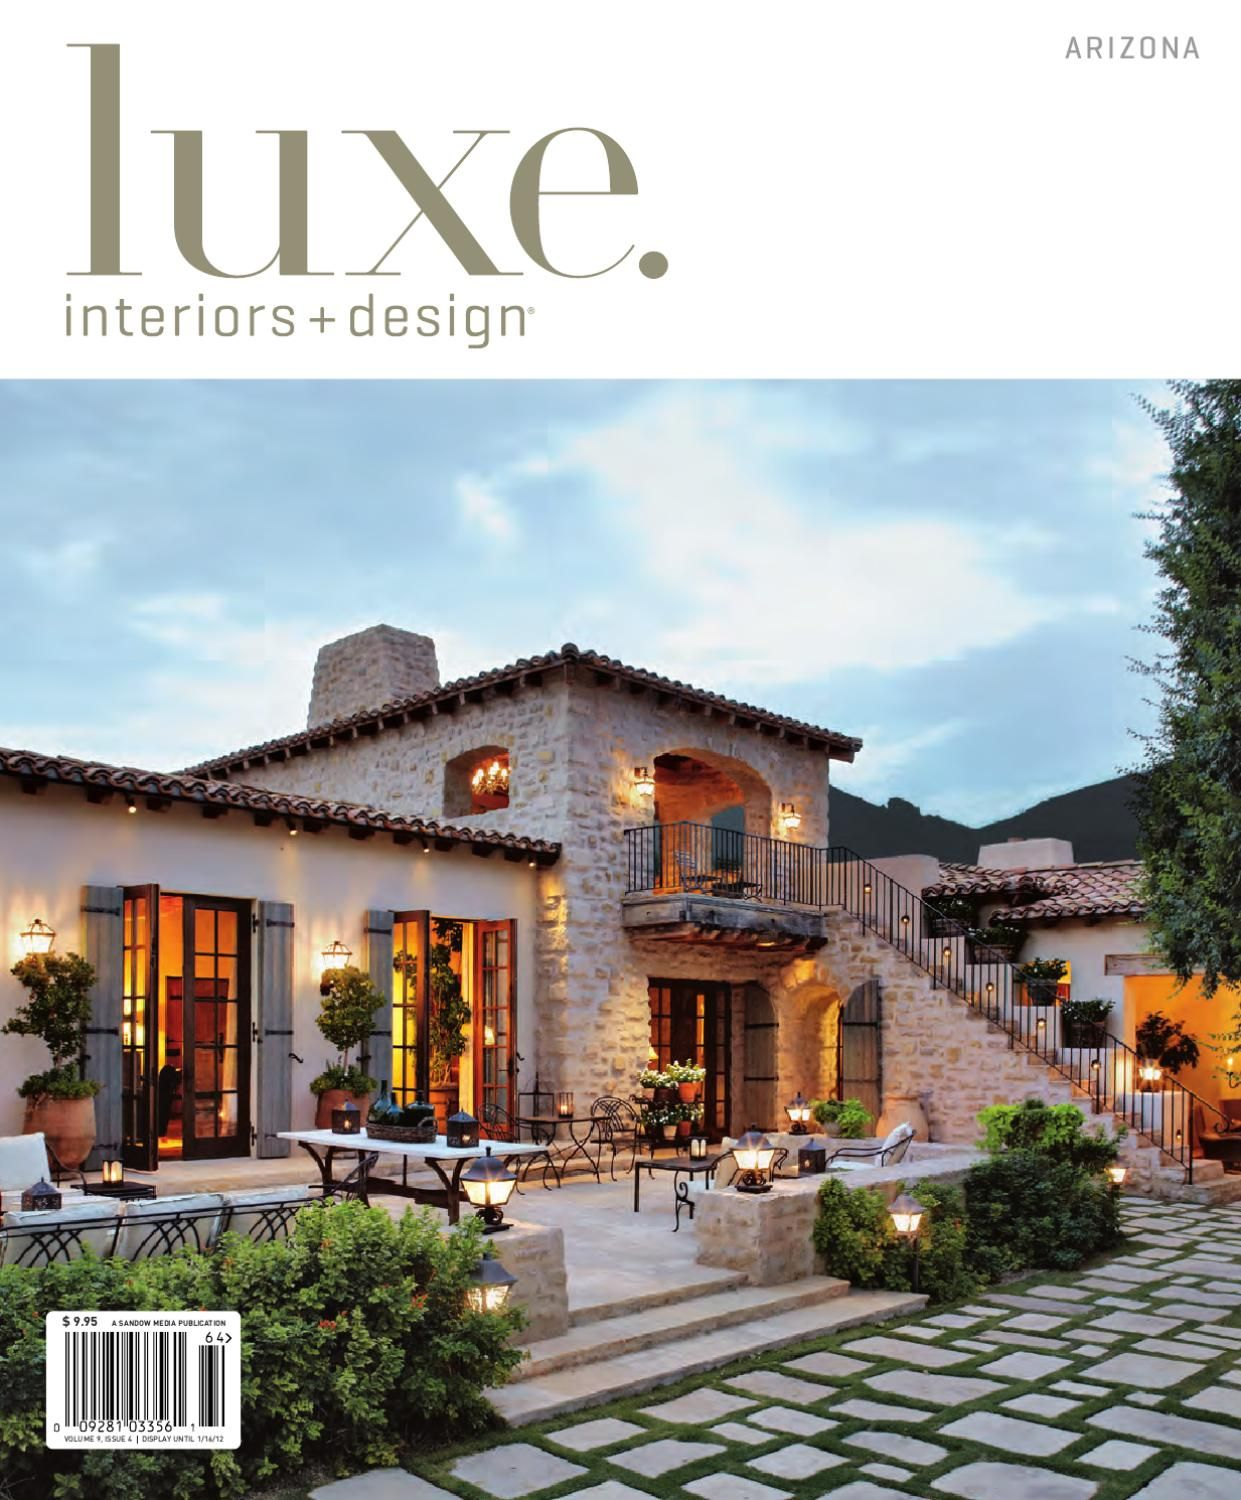 Luxe interior design arzona 13 in 2019 i like this - Home and architectural trends magazine ...